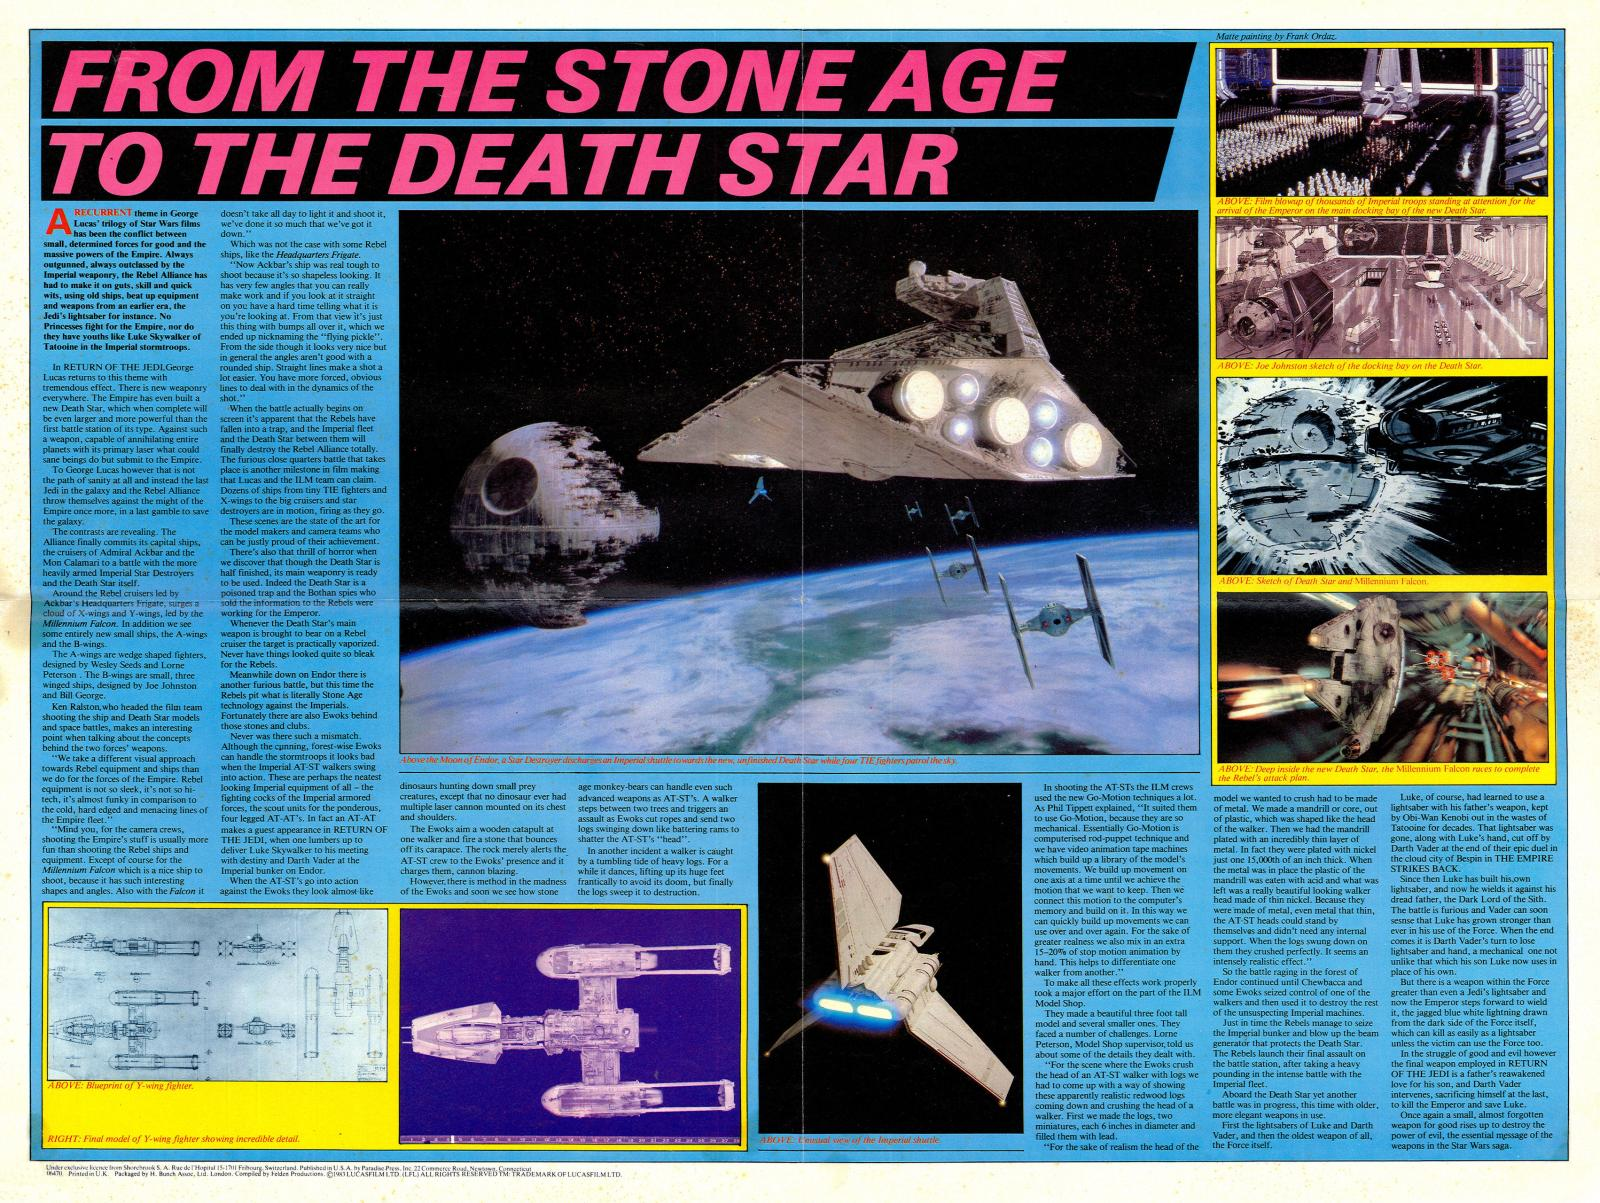 star wars return of the jedi poster magazine 3 death star endor ewok at-st star destroyer y-wing shuttle tydirium